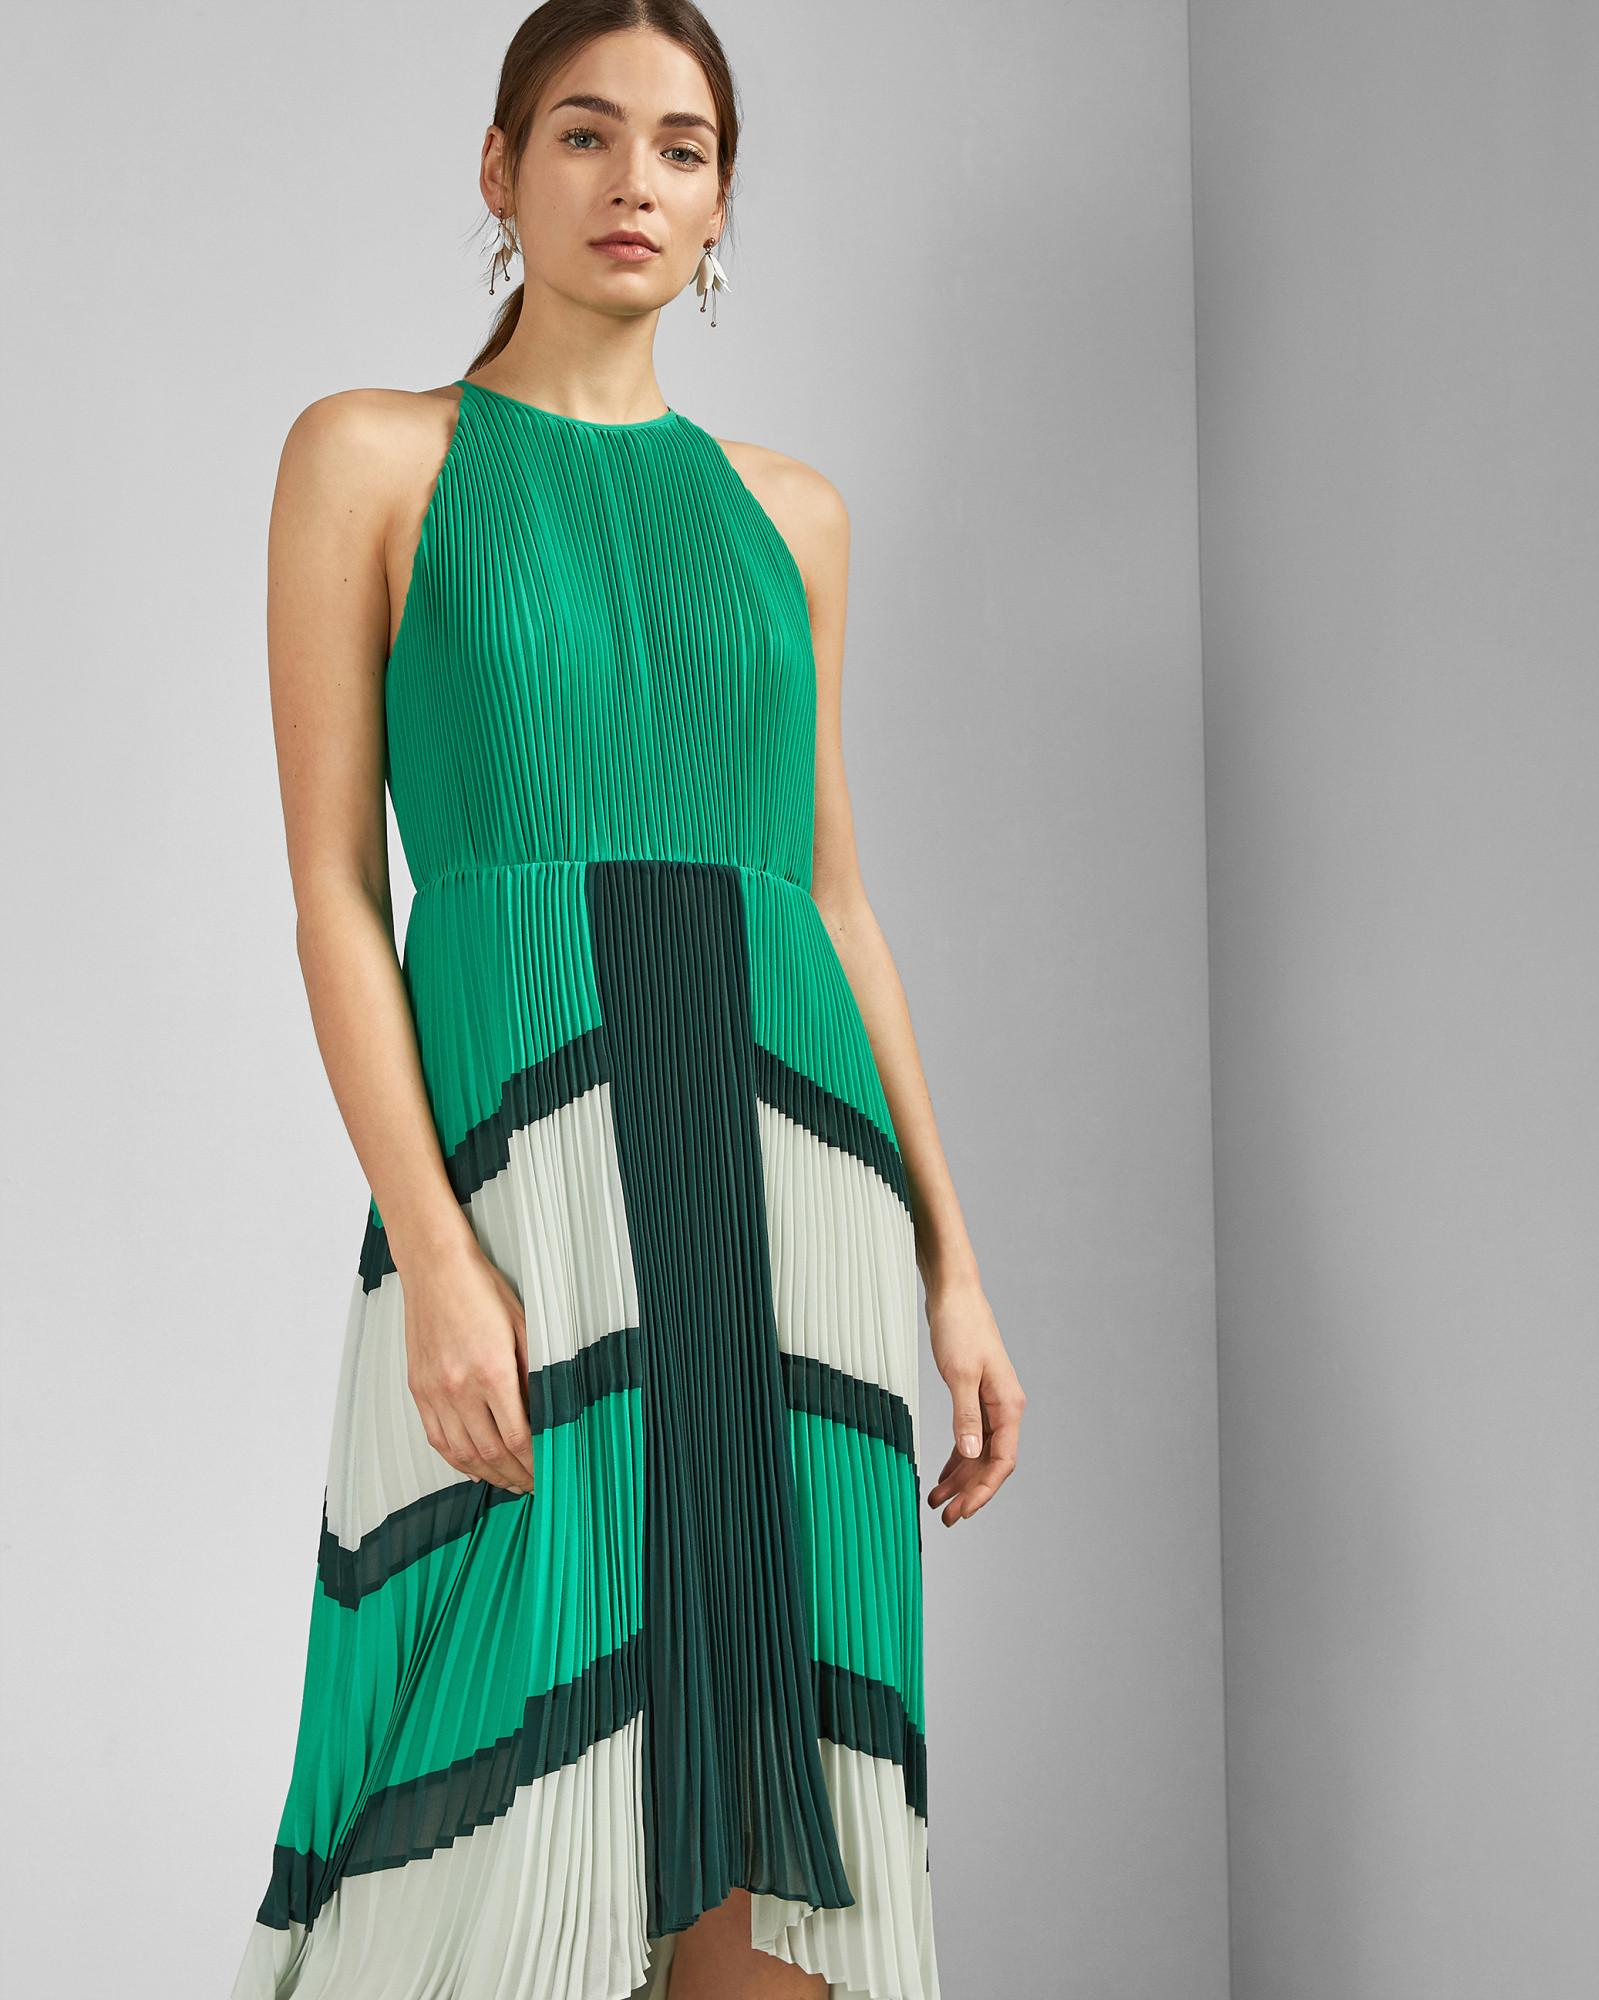 ff93f023b67 ... Green Dip Hem Pleated Dress - Lyst. Visit Ted Baker. Tap to visit site